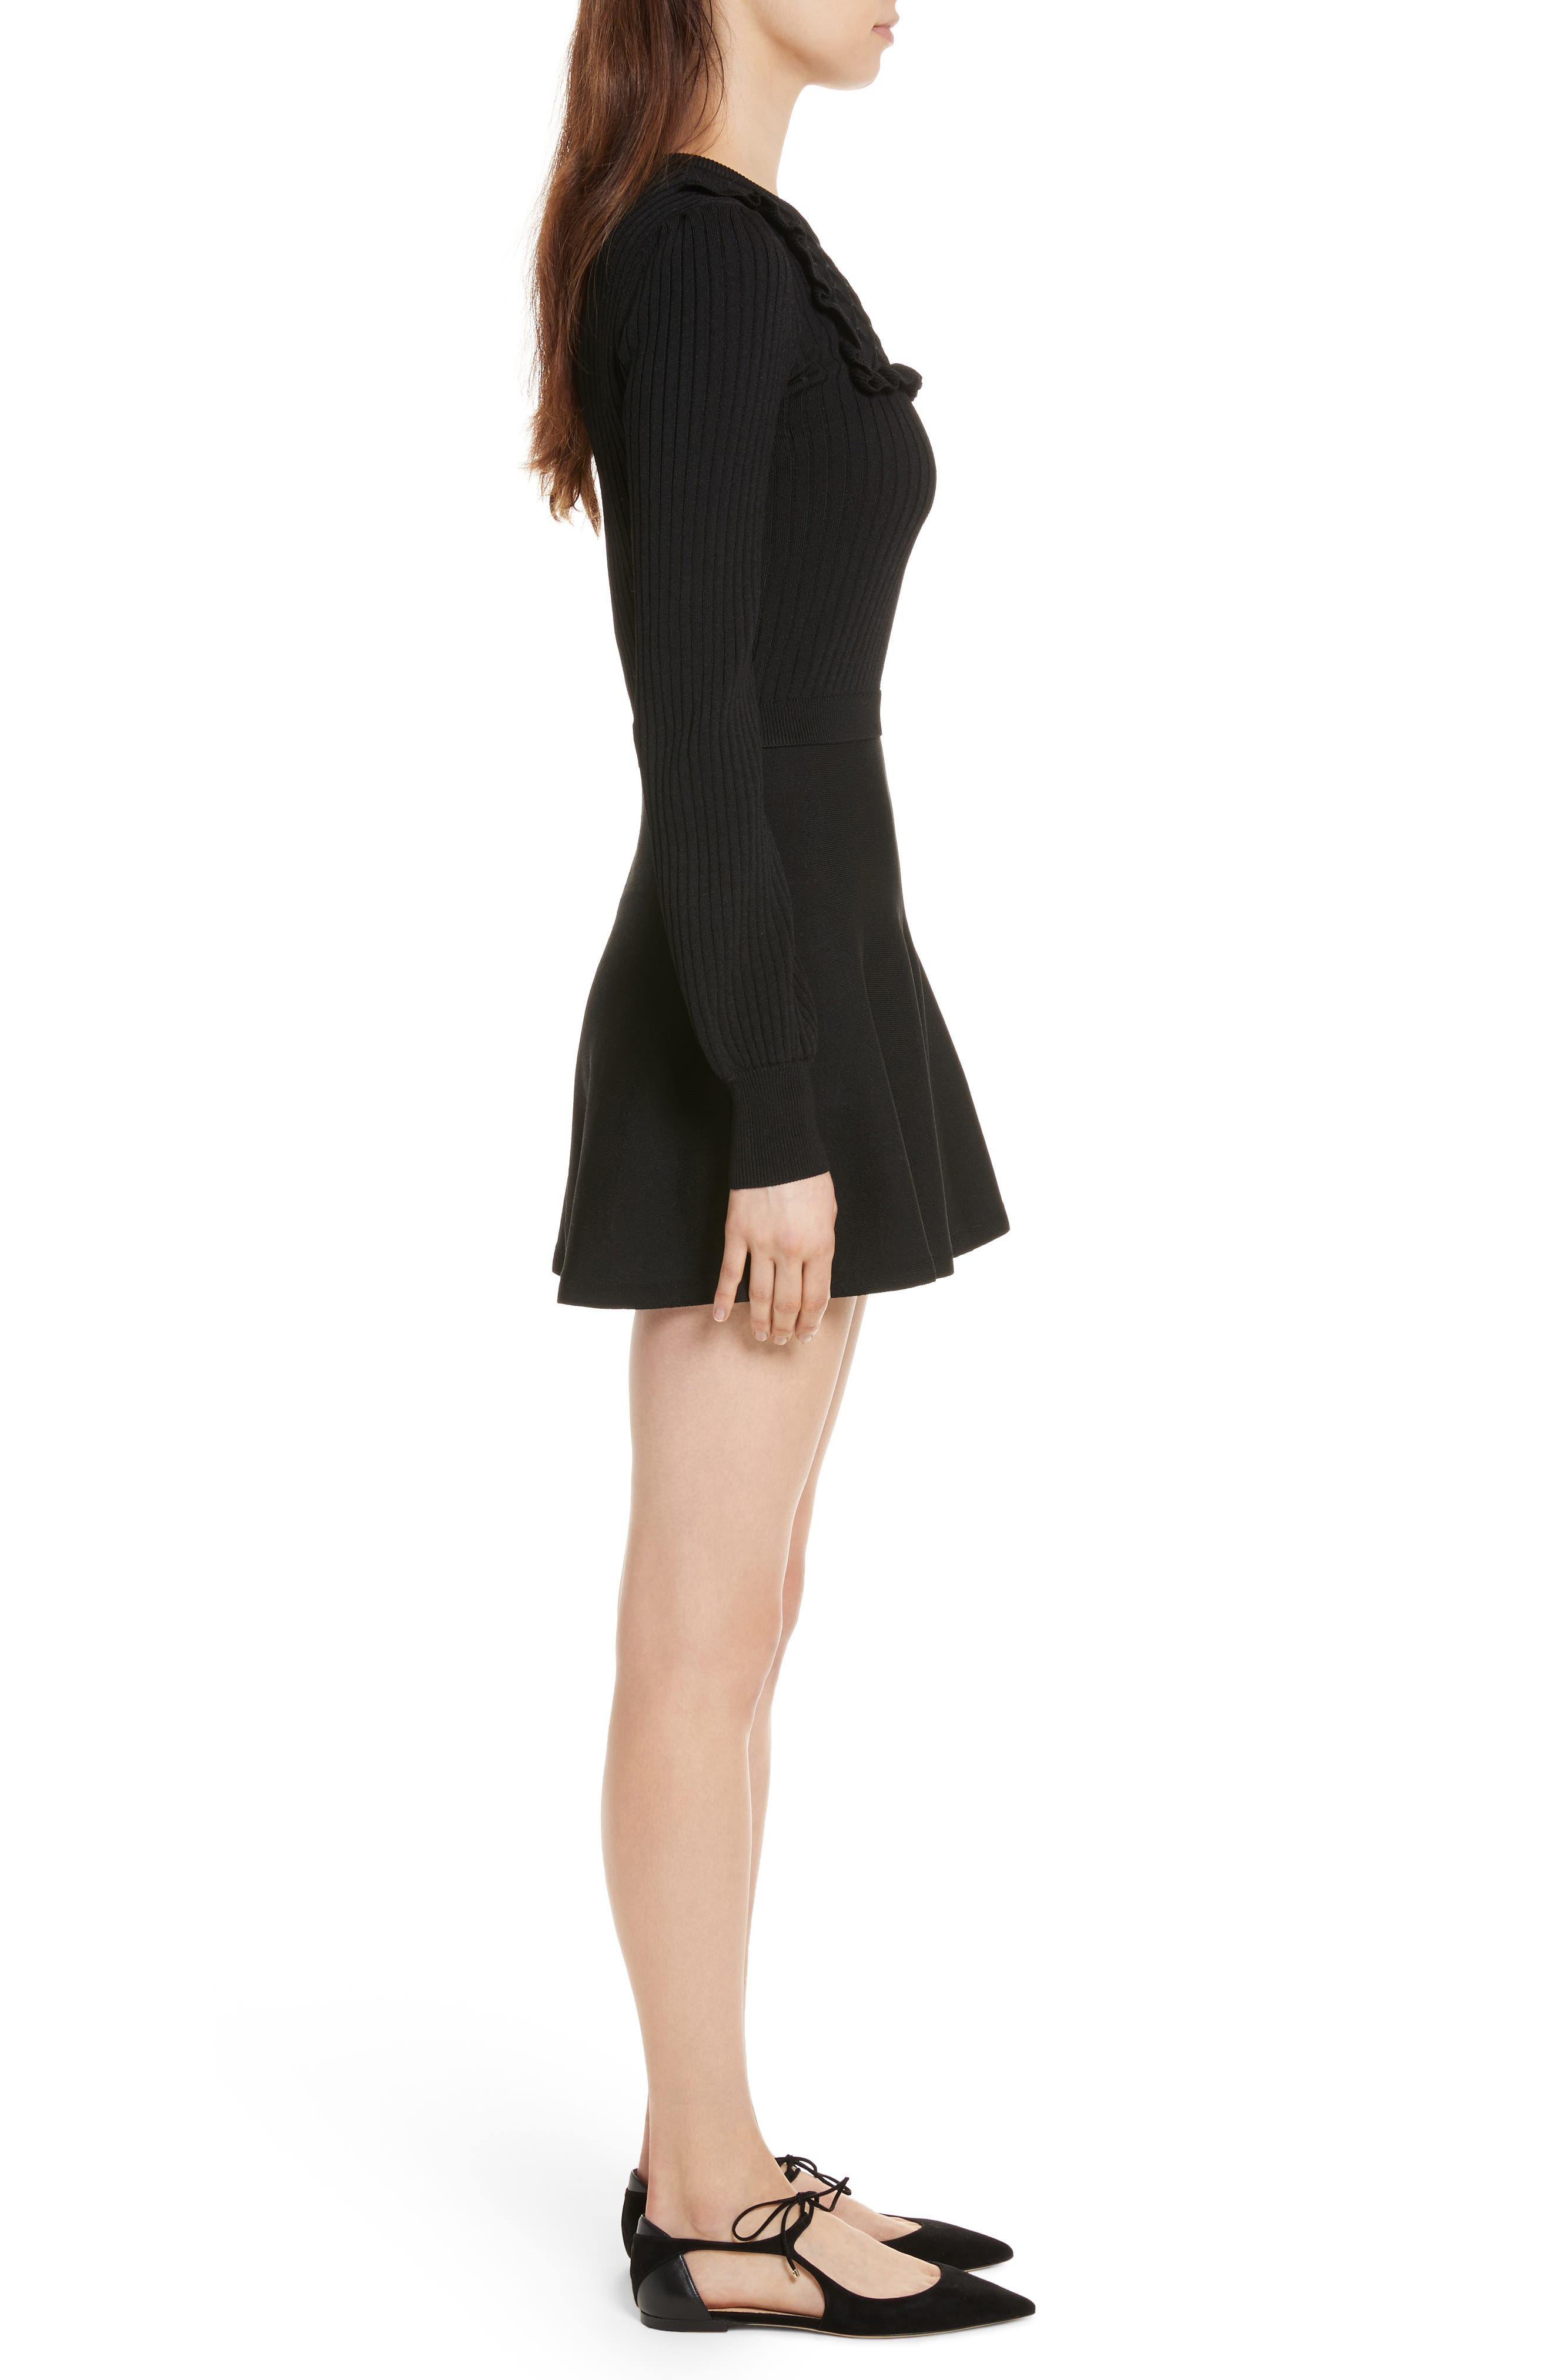 Hand Stitched Stretch Knit Dress,                             Alternate thumbnail 3, color,                             001